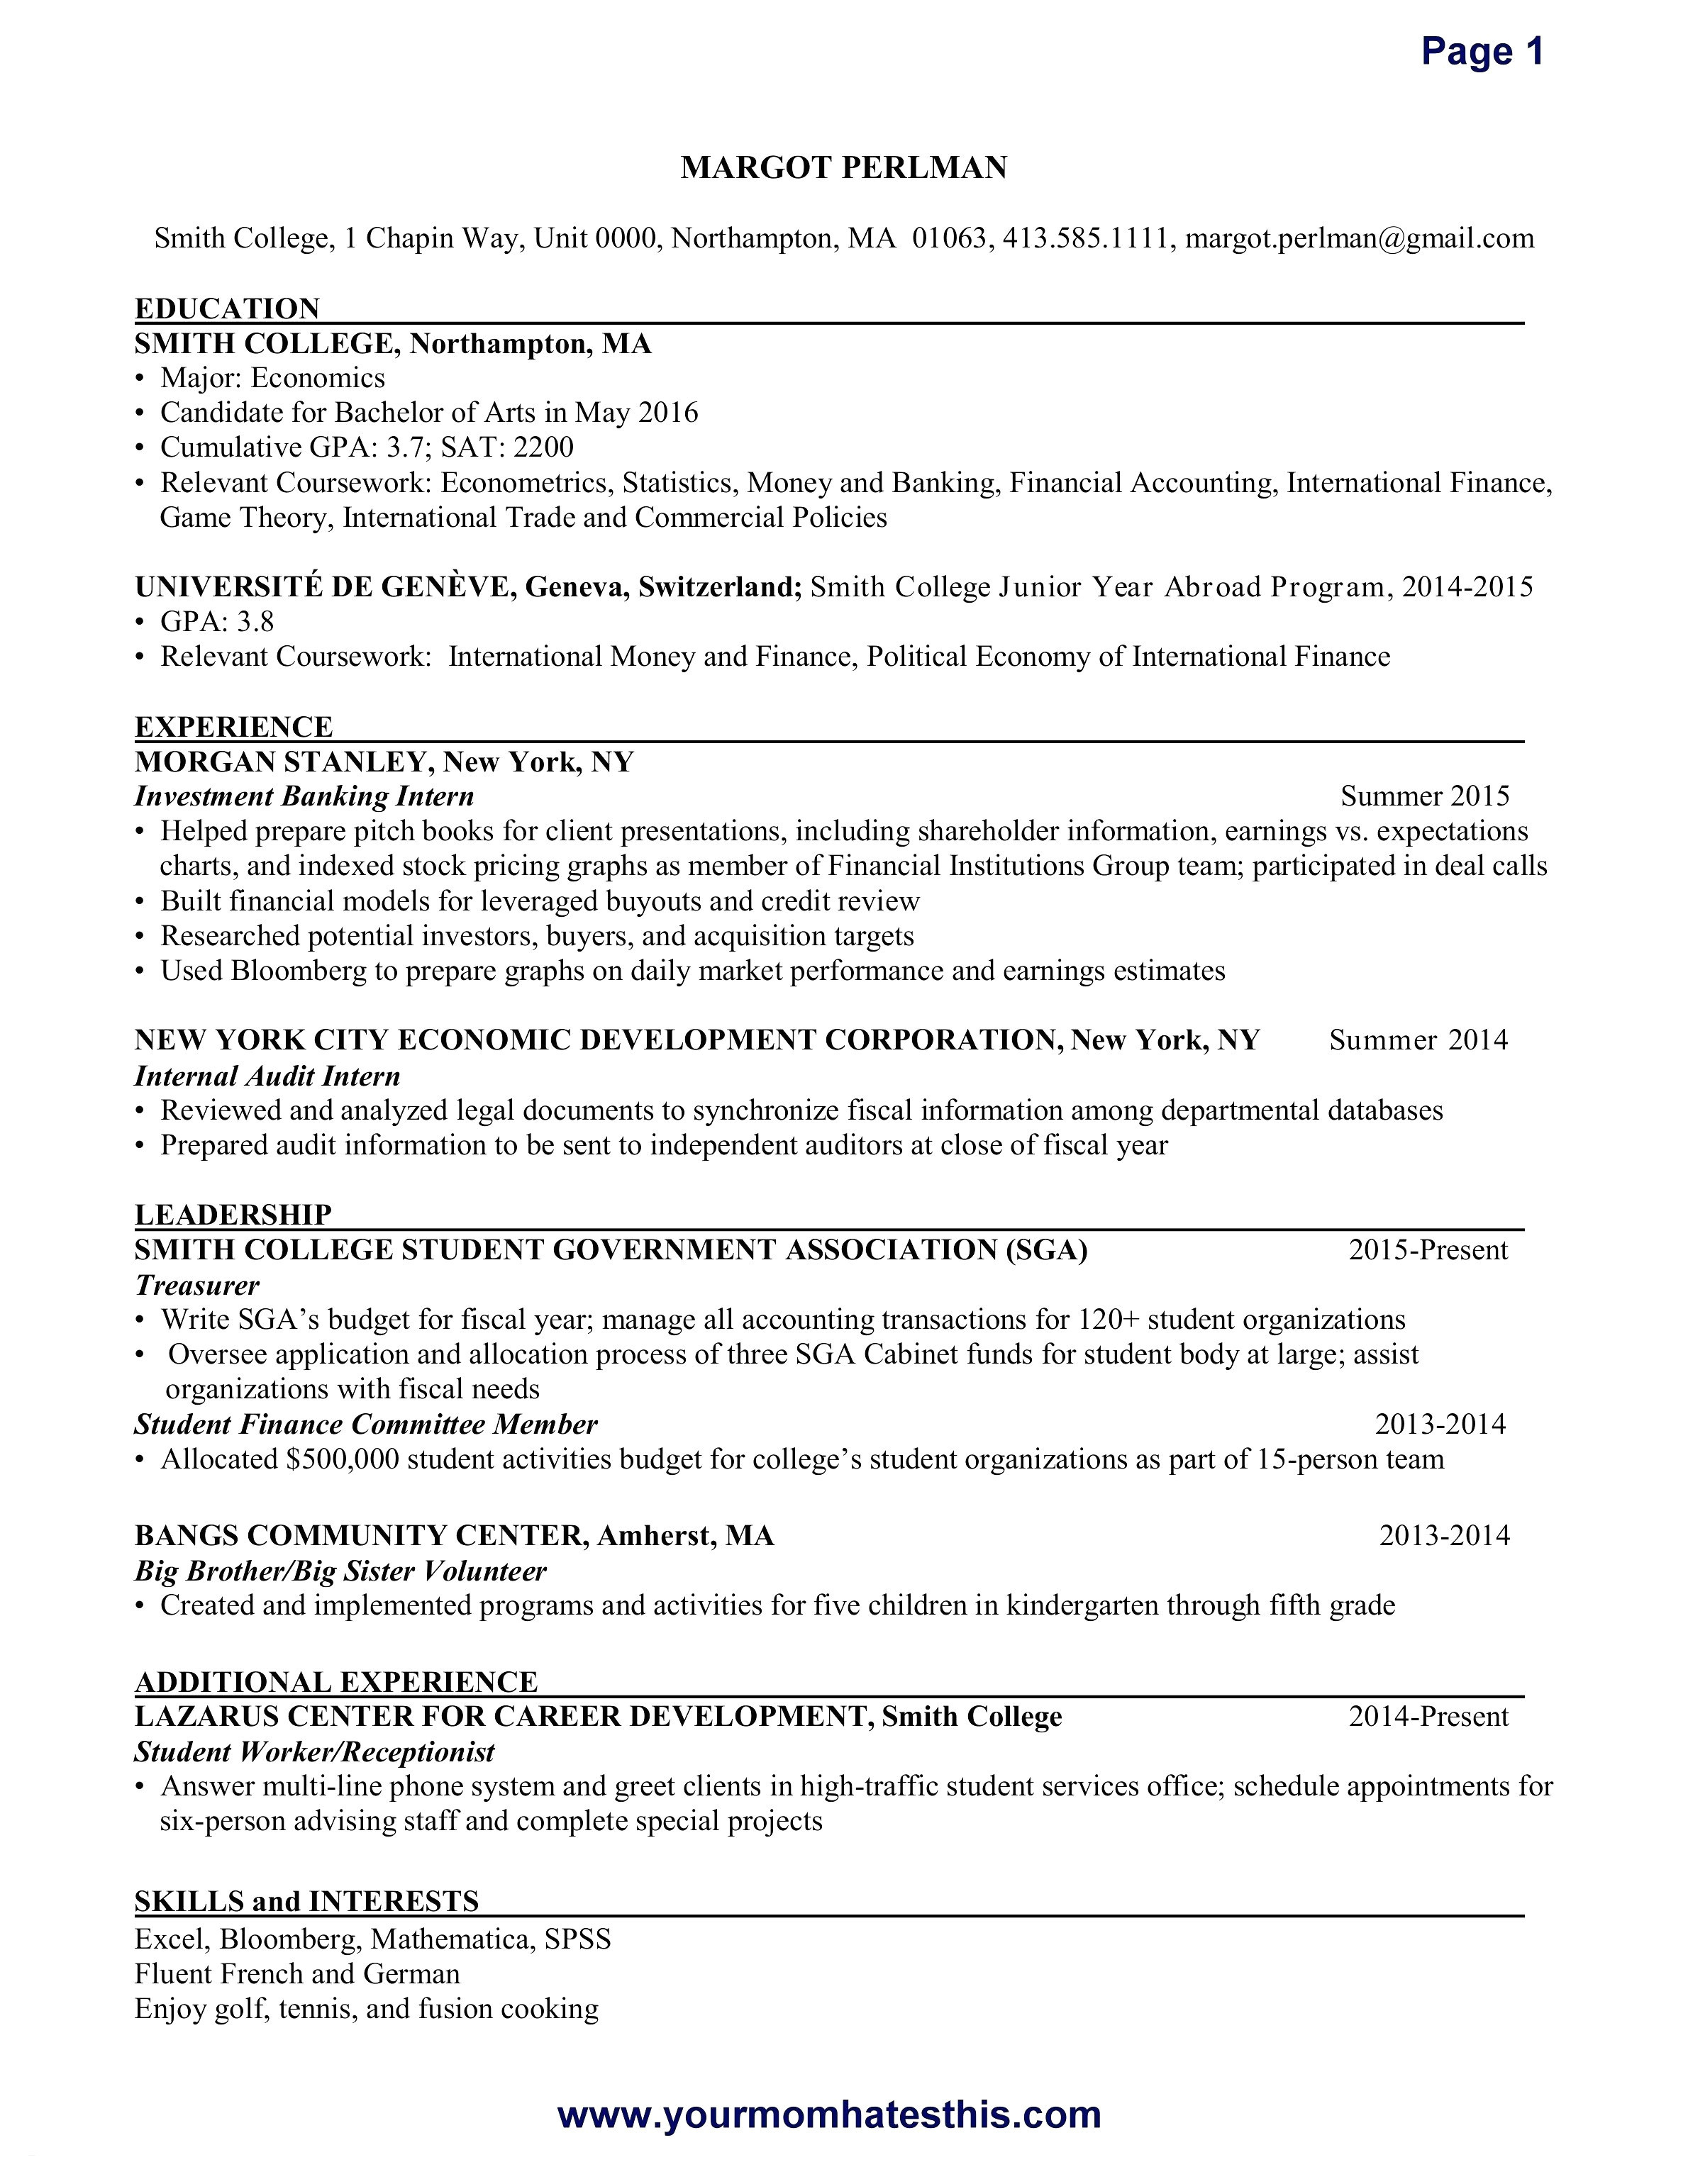 Security Resume Skills - Awesome Security Ficer Resume Sample